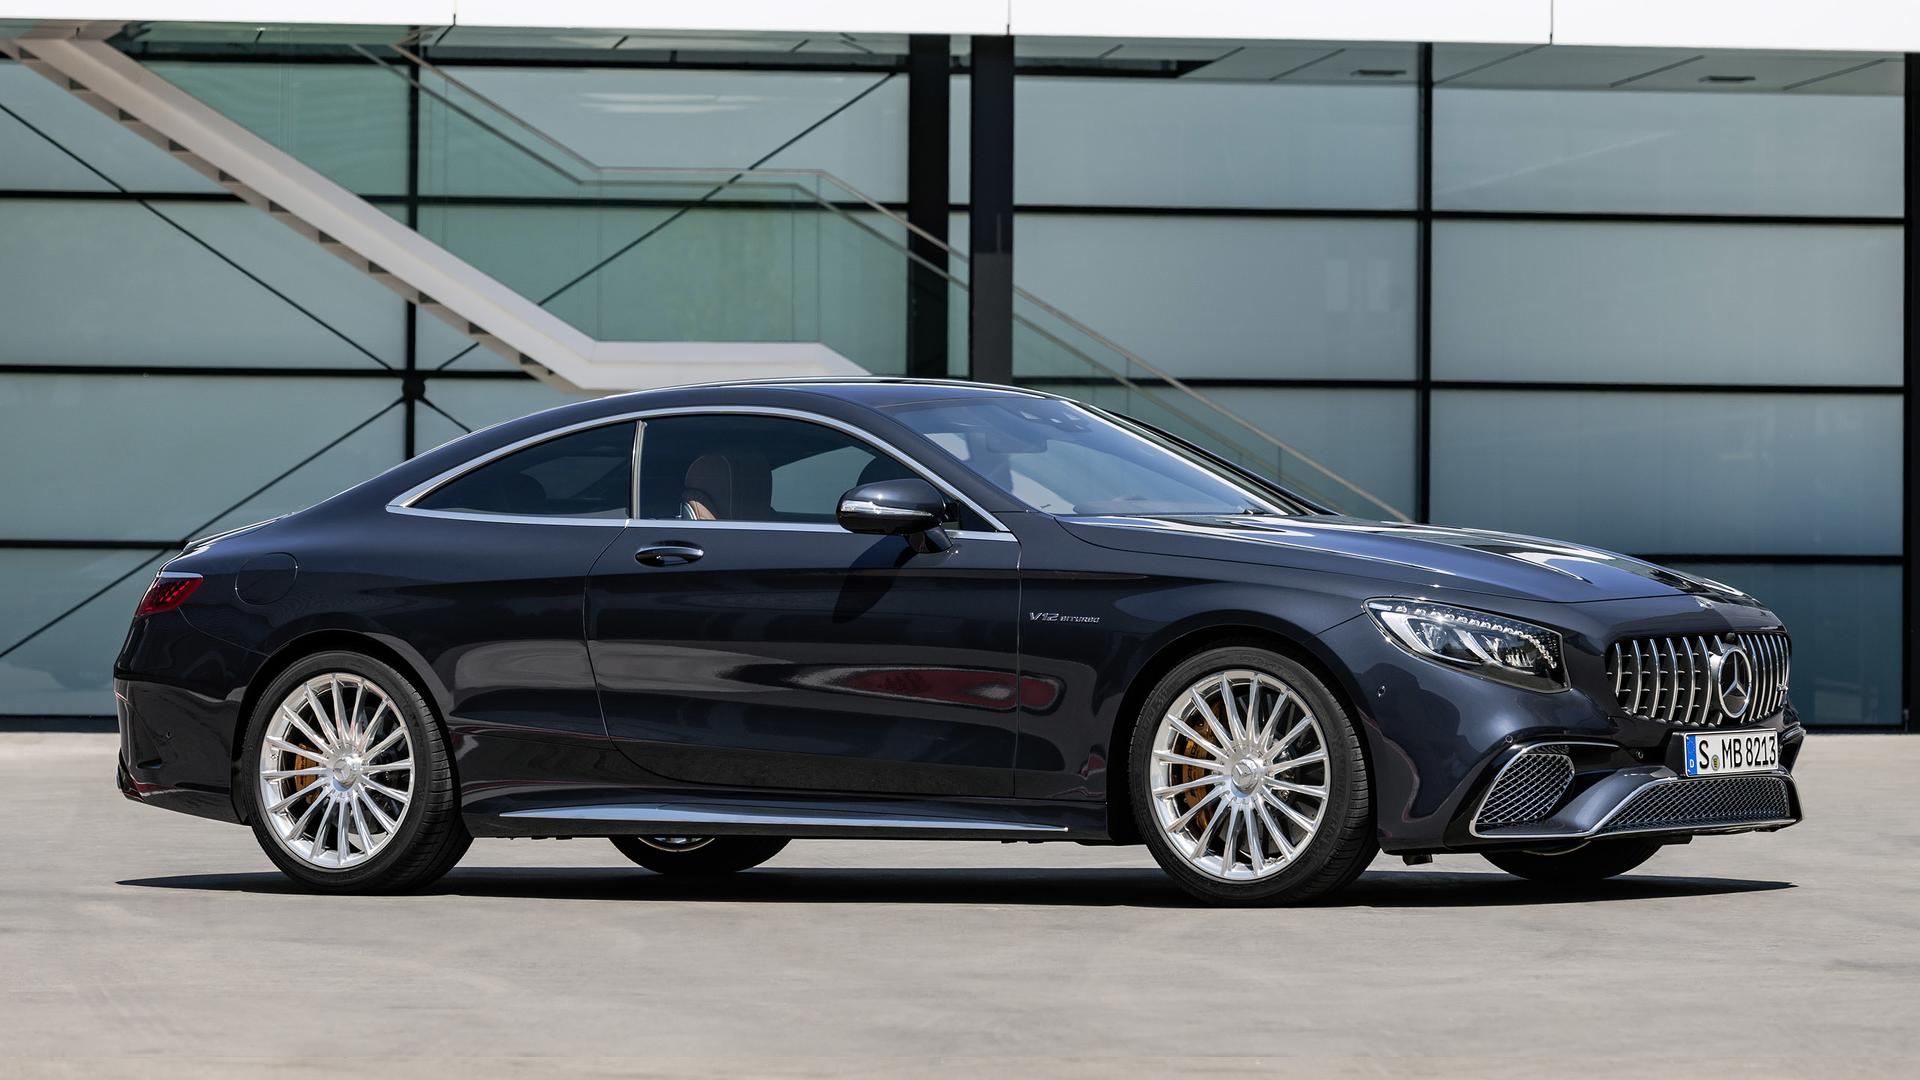 https://icdn-4.motor1.com/images/mgl/x0bpz/s1/2018-mercedes-amg-s65-coupe.jpg